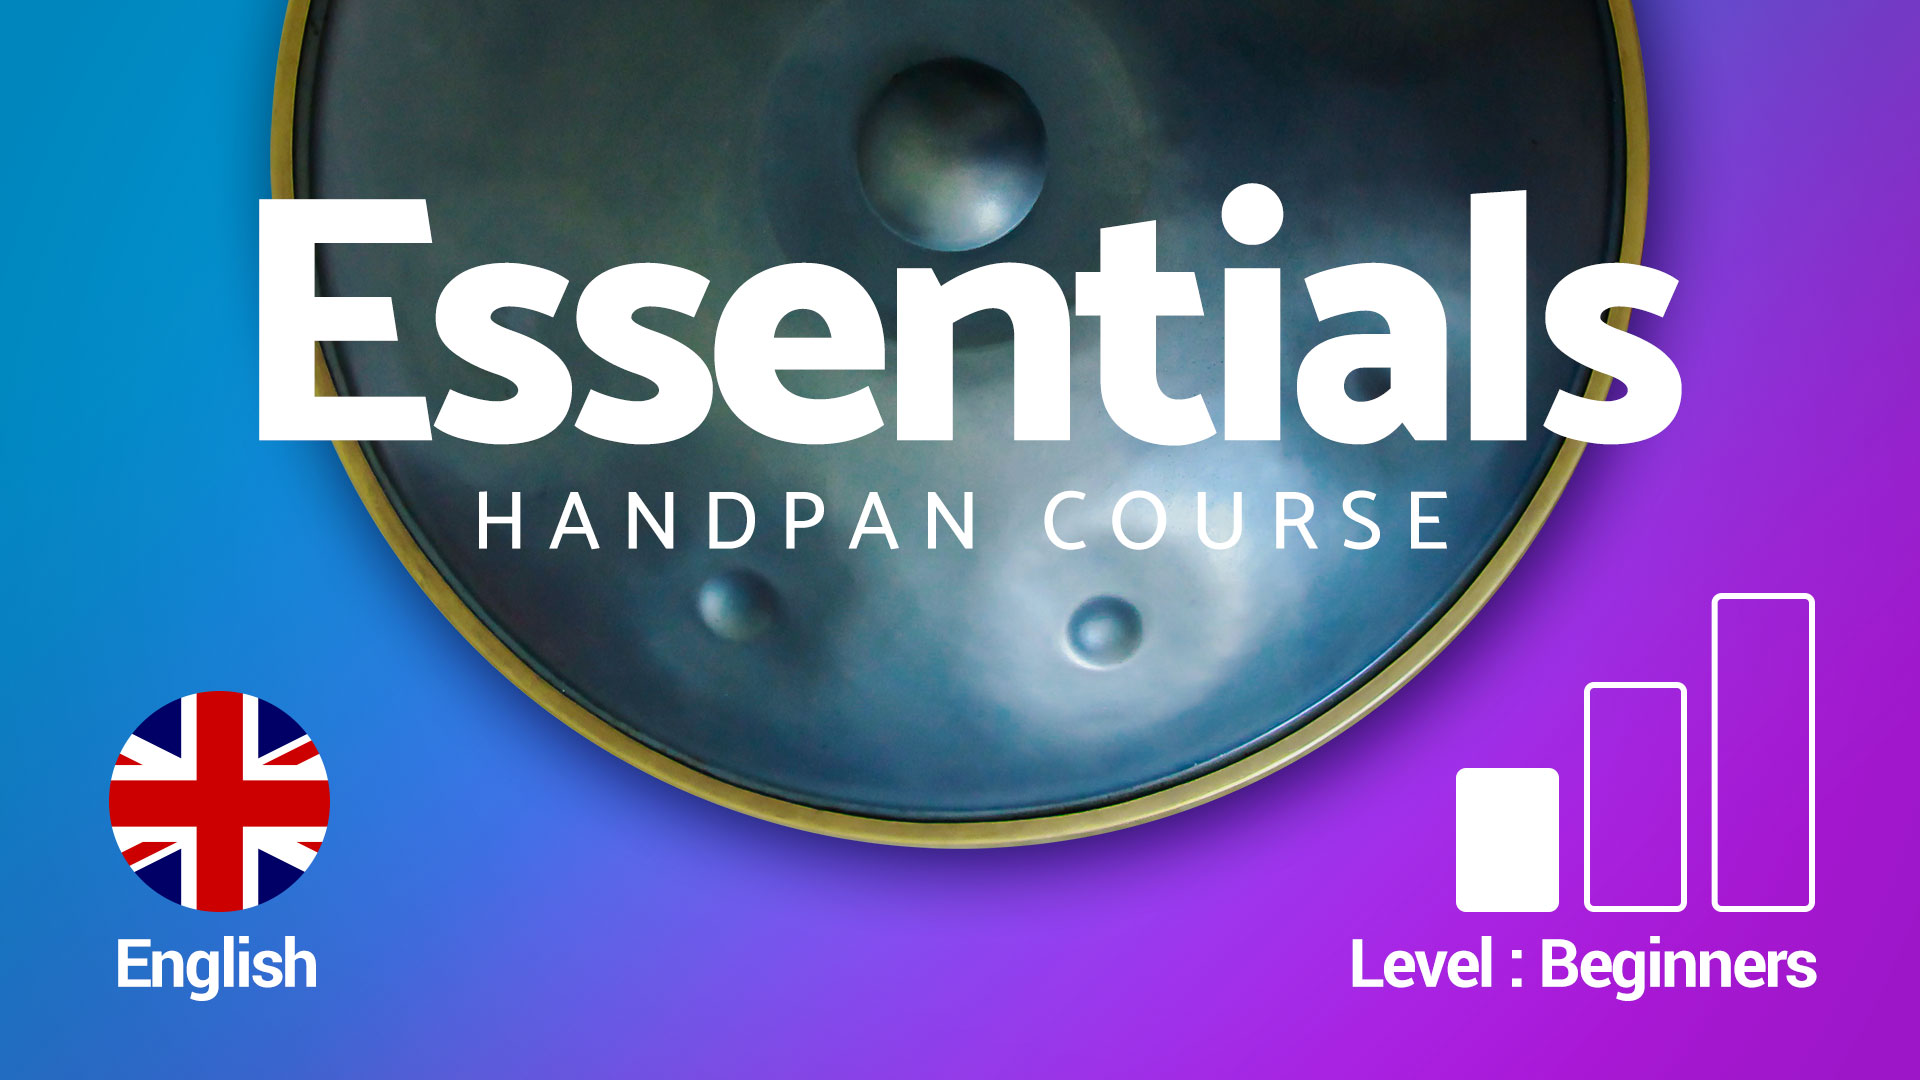 Handpan lessons & tutorials for beginners with David